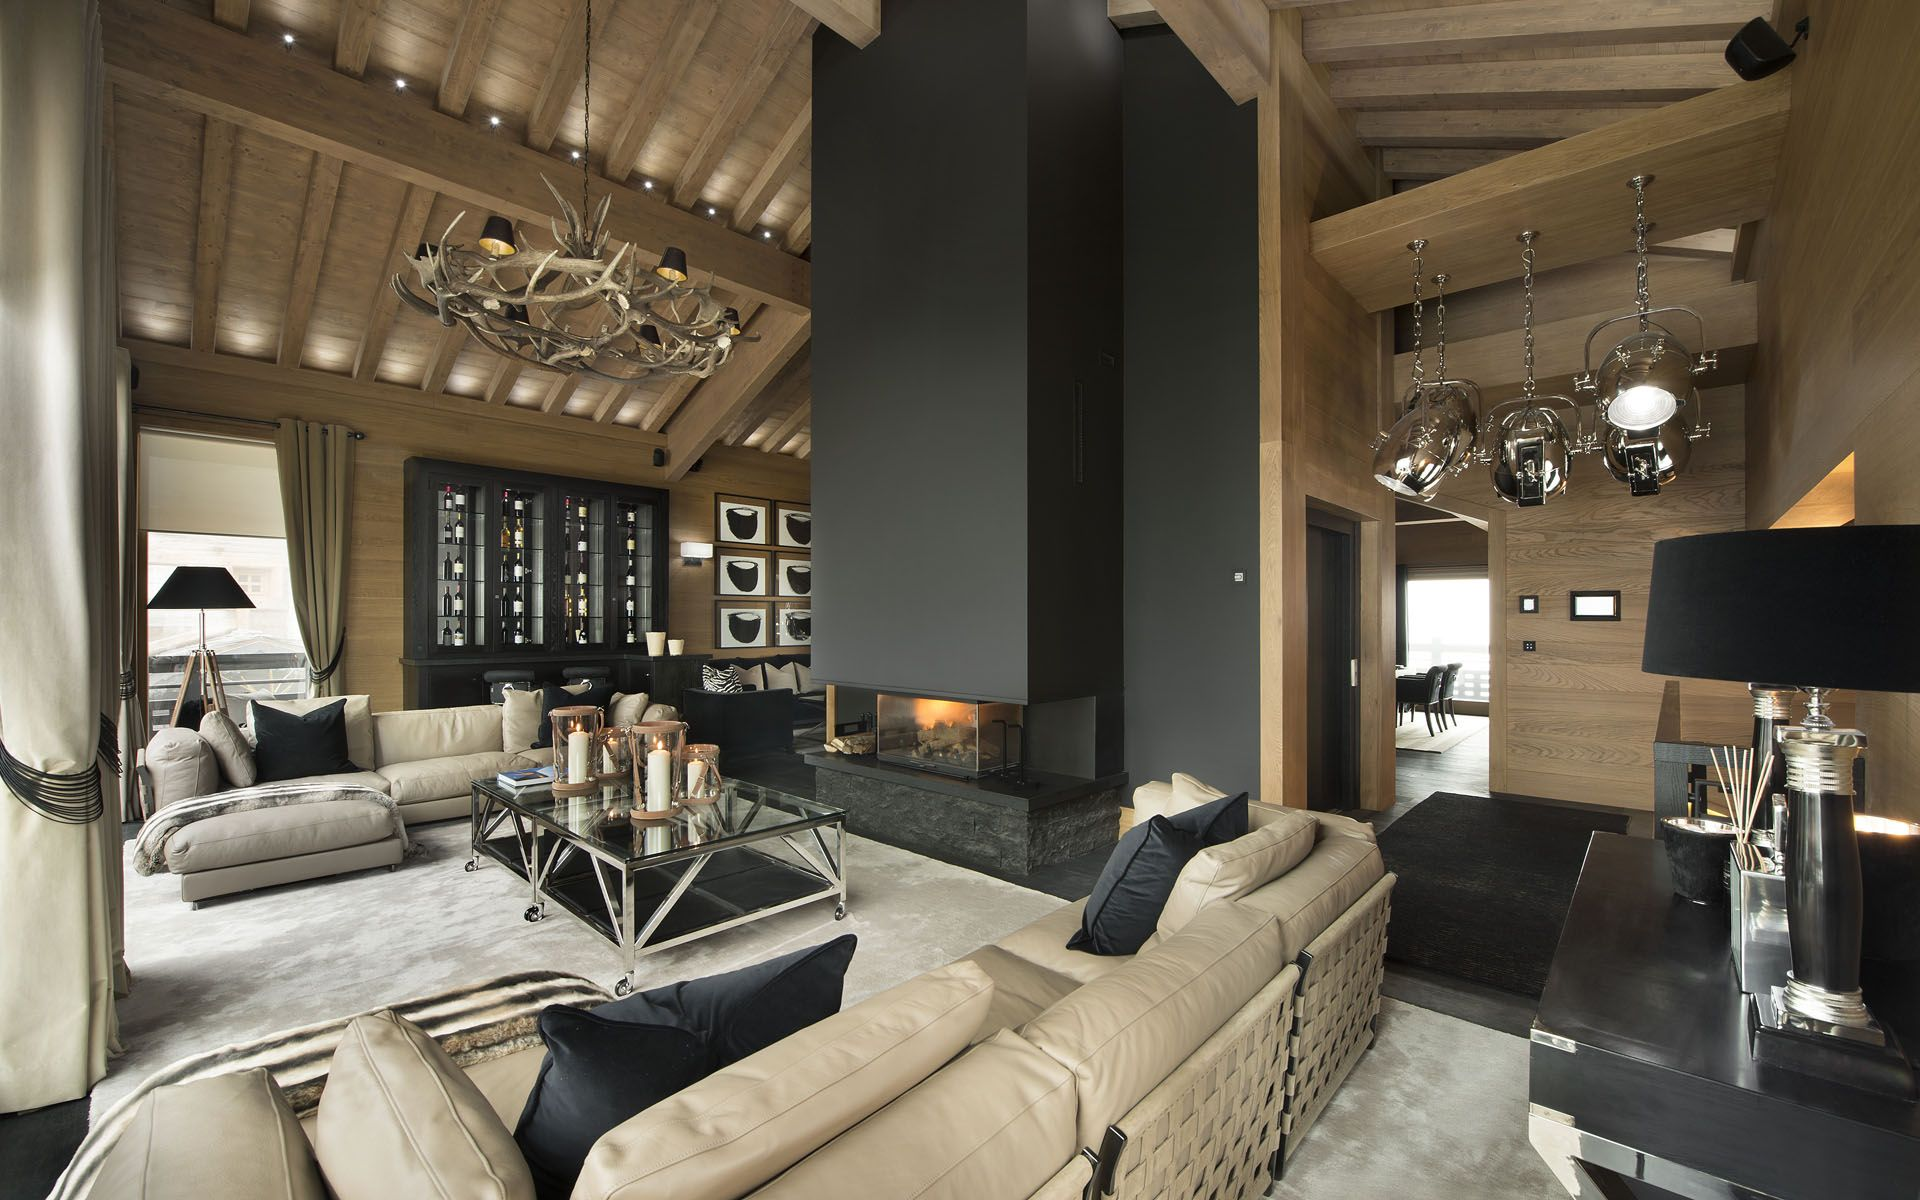 Chalet Petit Palais, Courchevel 1850 - luxury ski chalet from ...